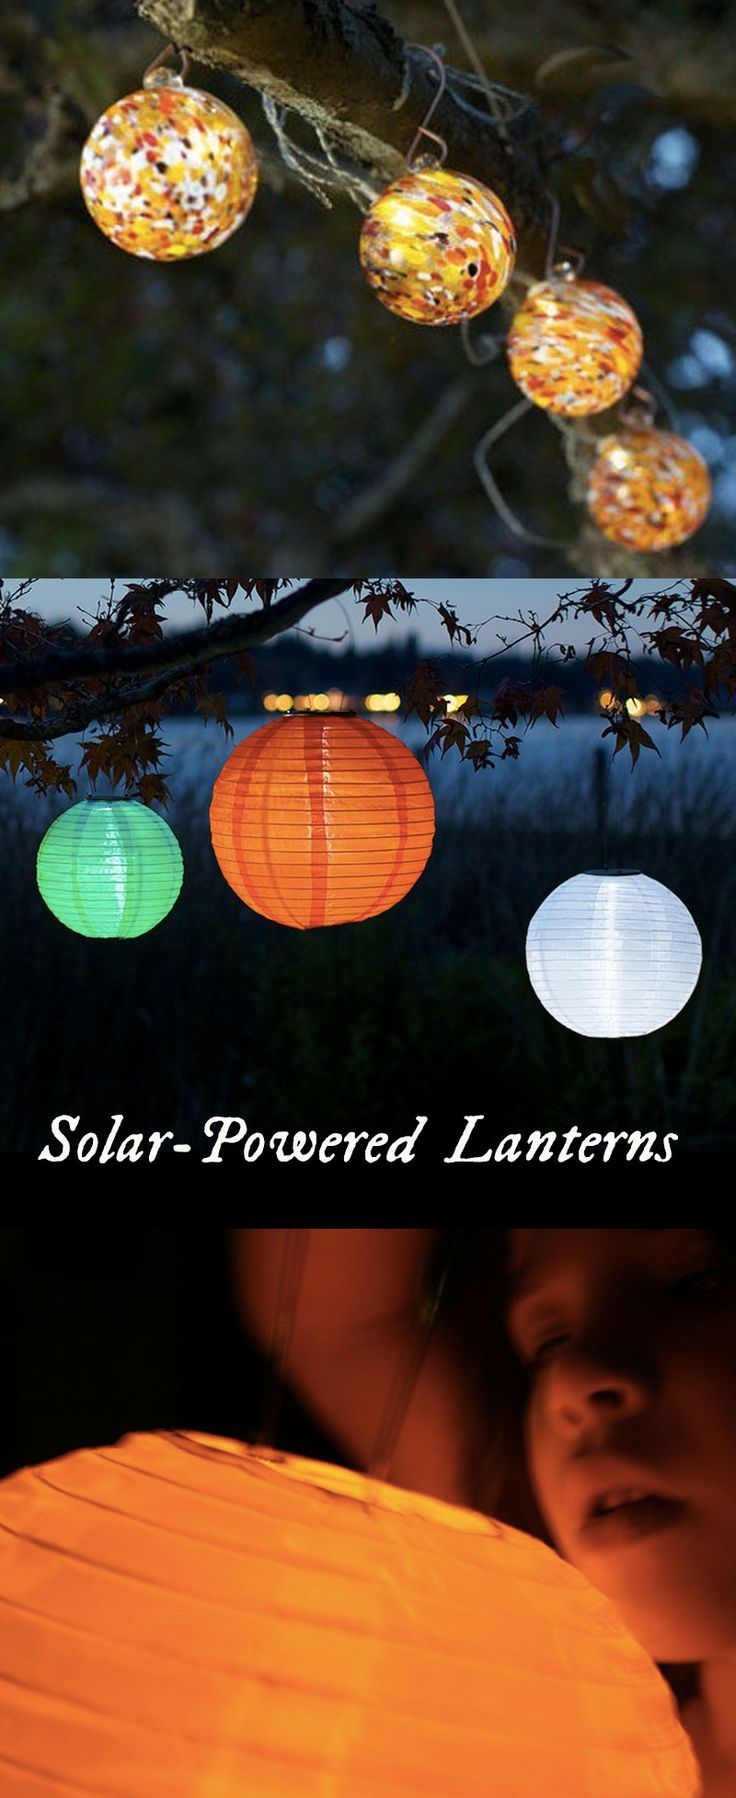 String Of Lights Wo Not Light : The accordion-style lanterns and string lights are made from nylon so the vibrant colors will ...